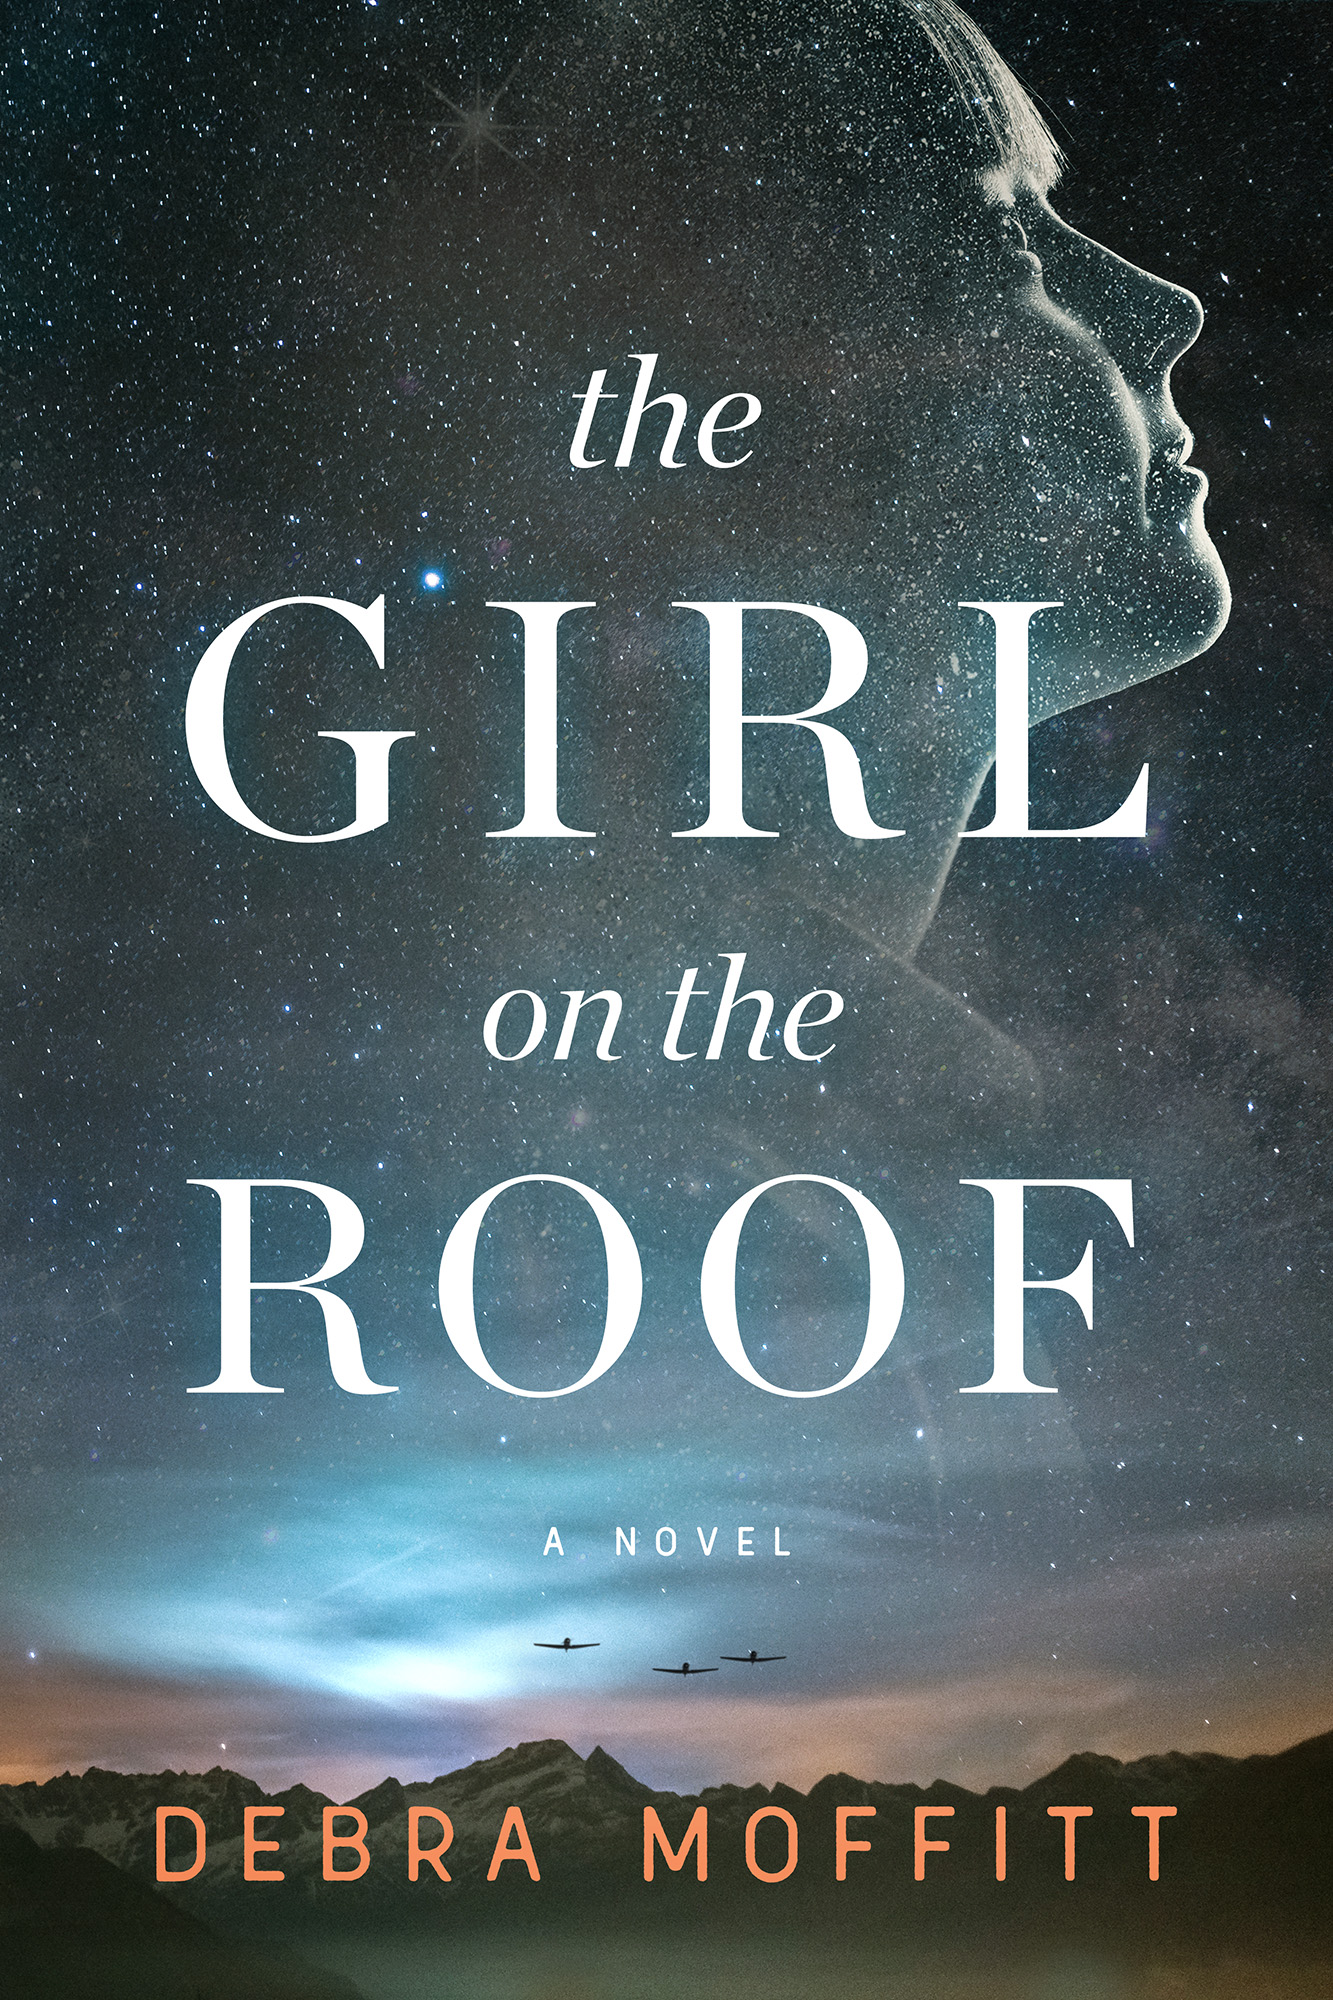 The Girl on the Roof